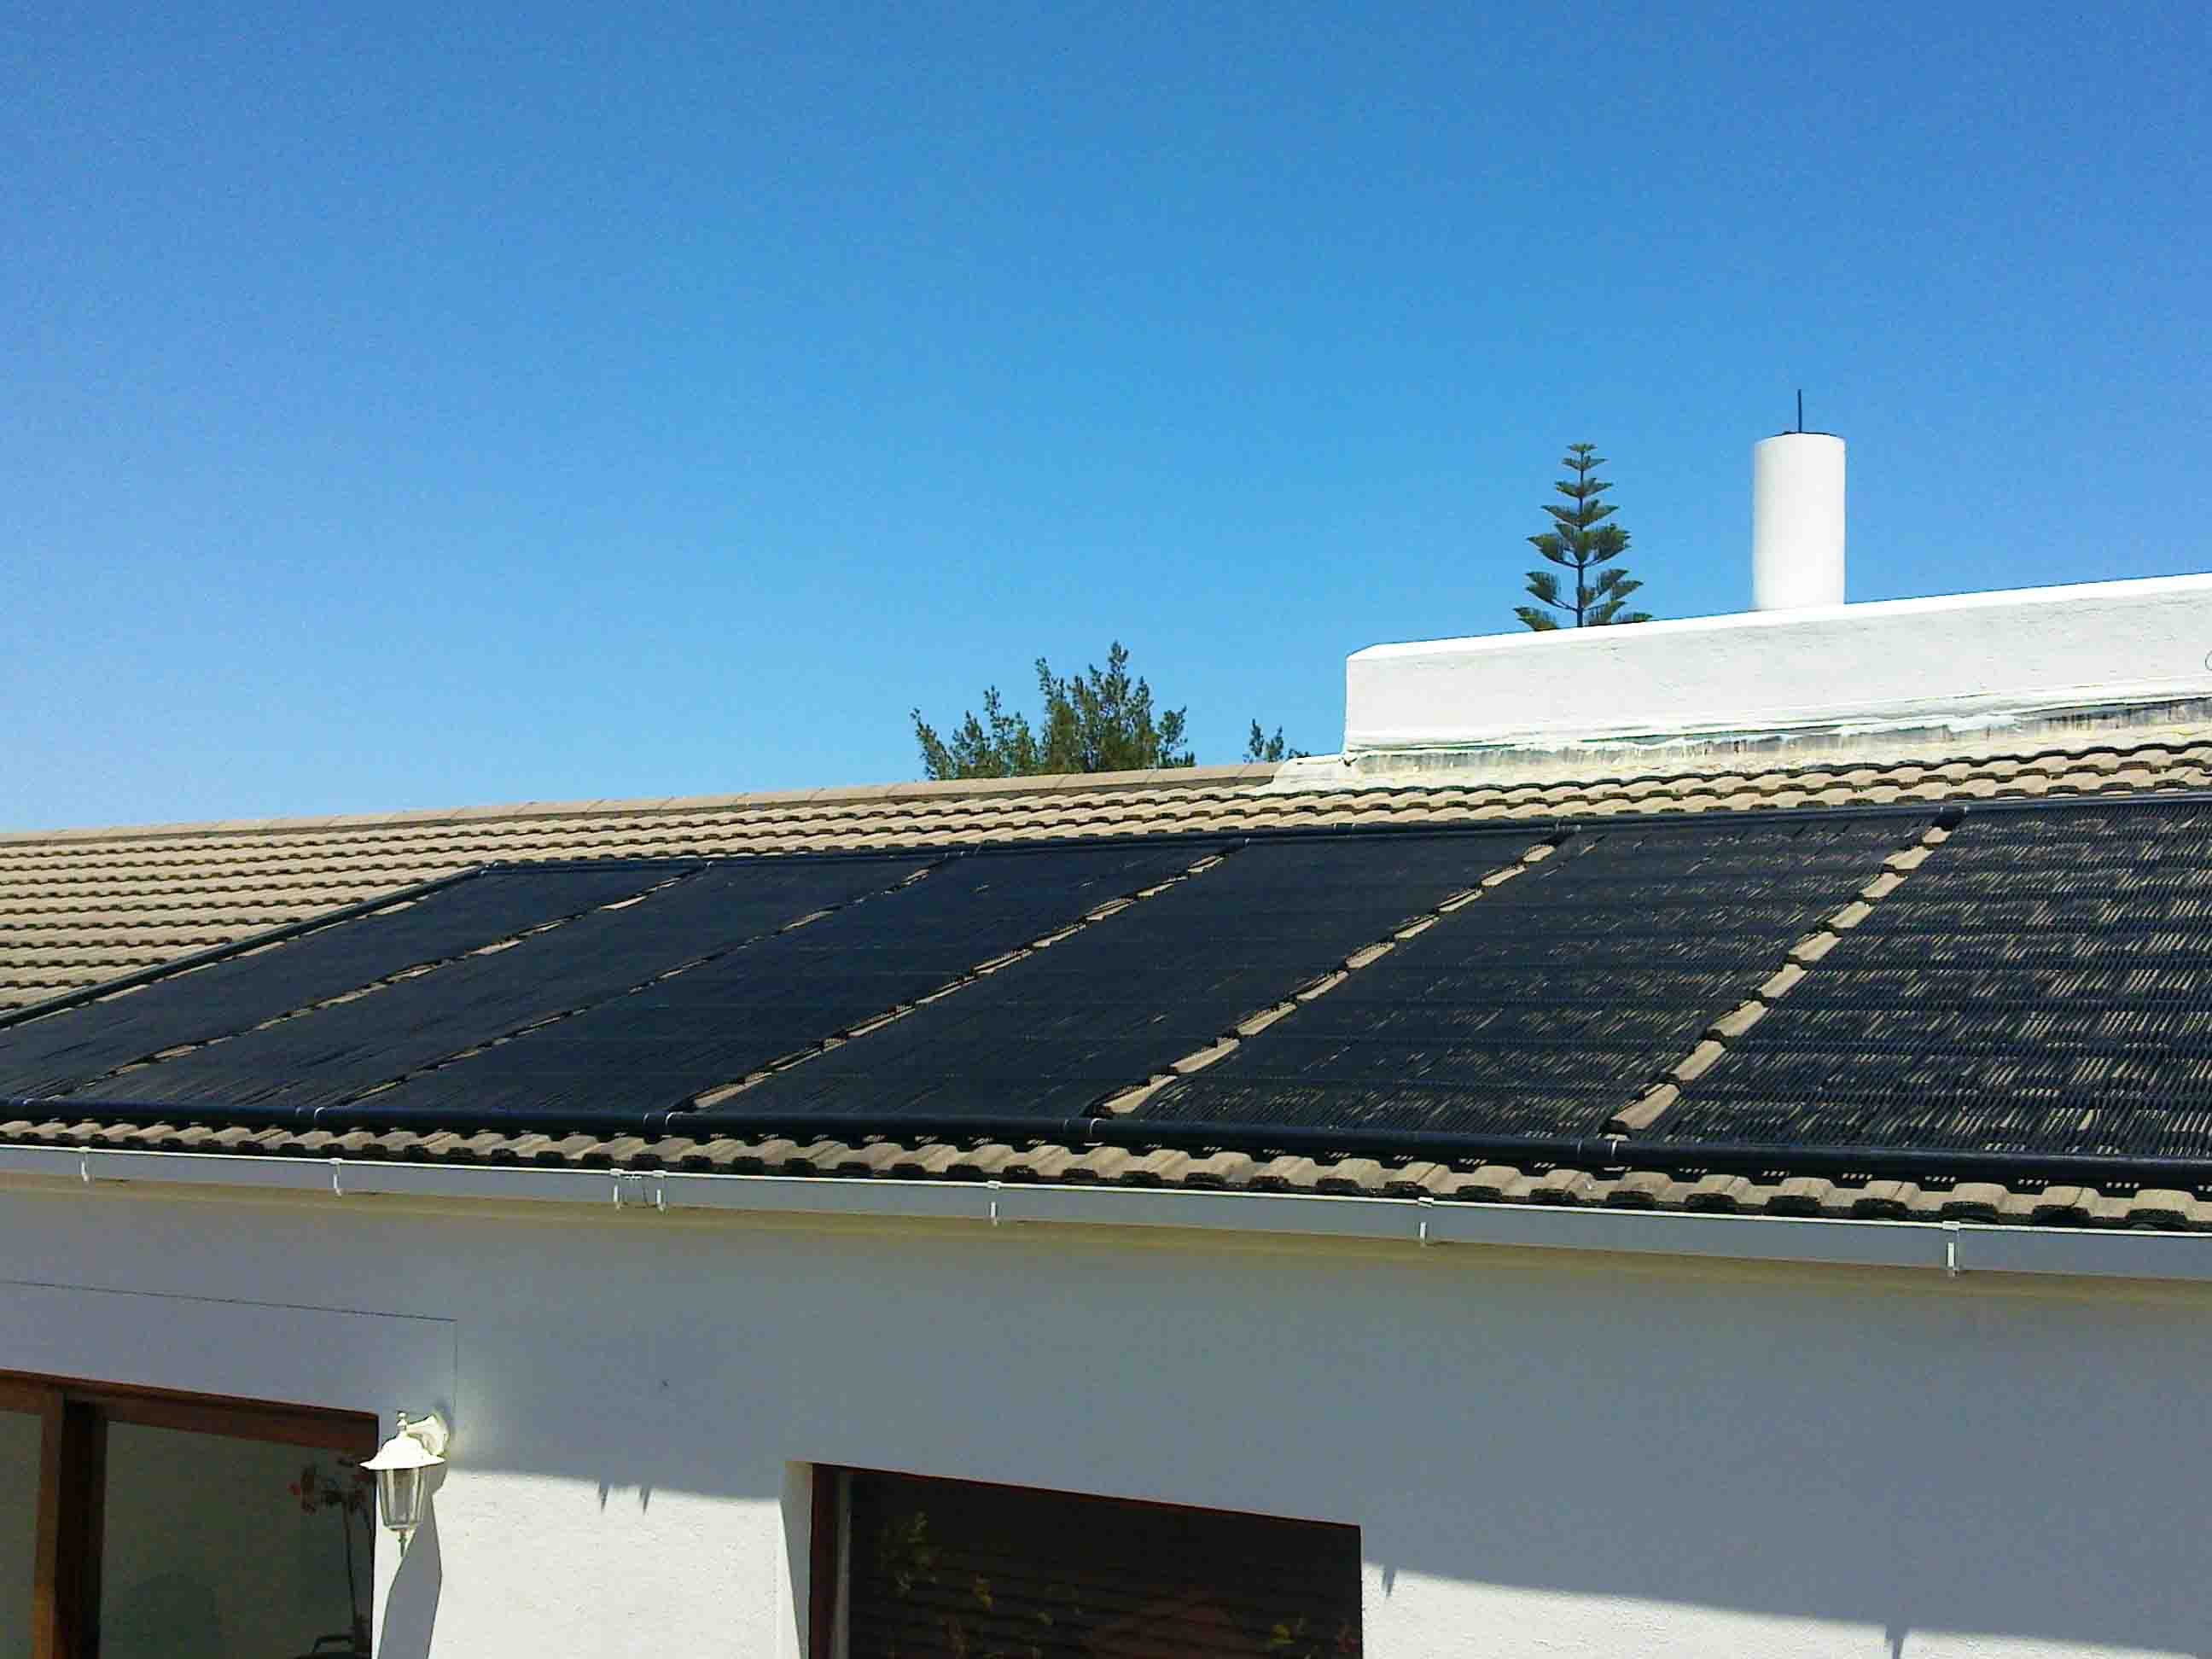 Swimming Pool Heating Solar Juice Home Panels Water Power In Edgemead